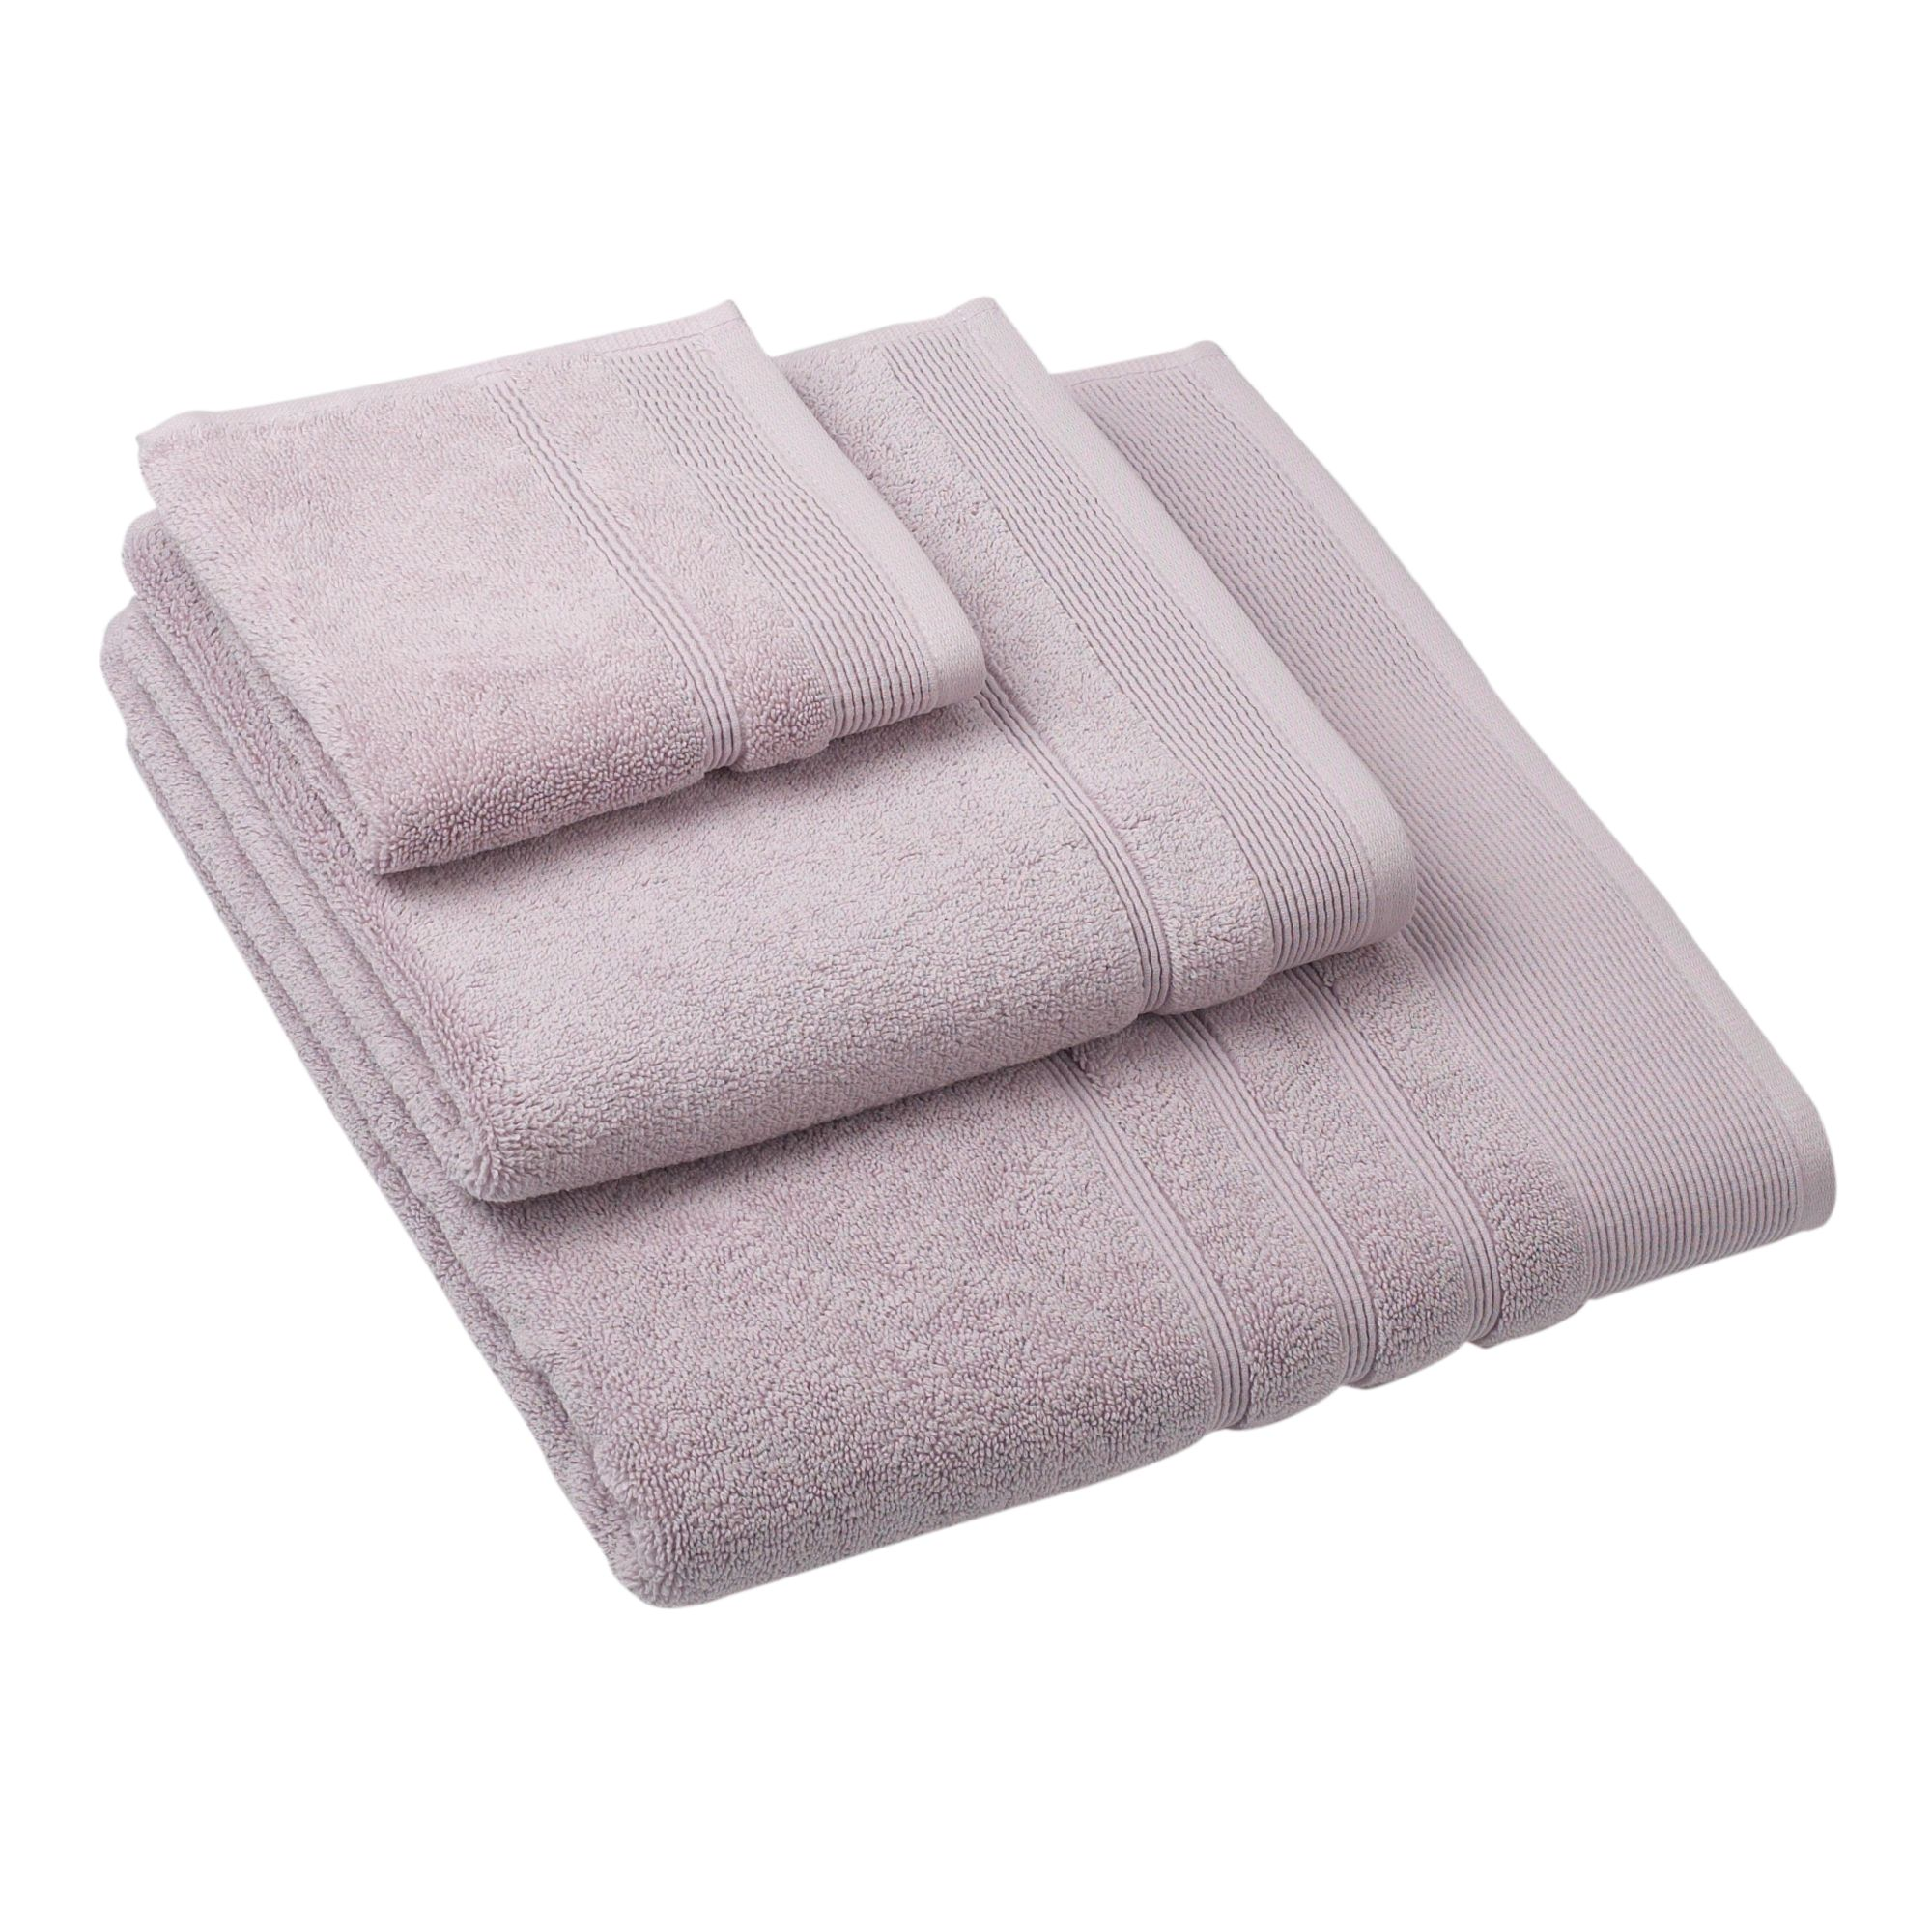 Linea Retreat bath towel in lavender